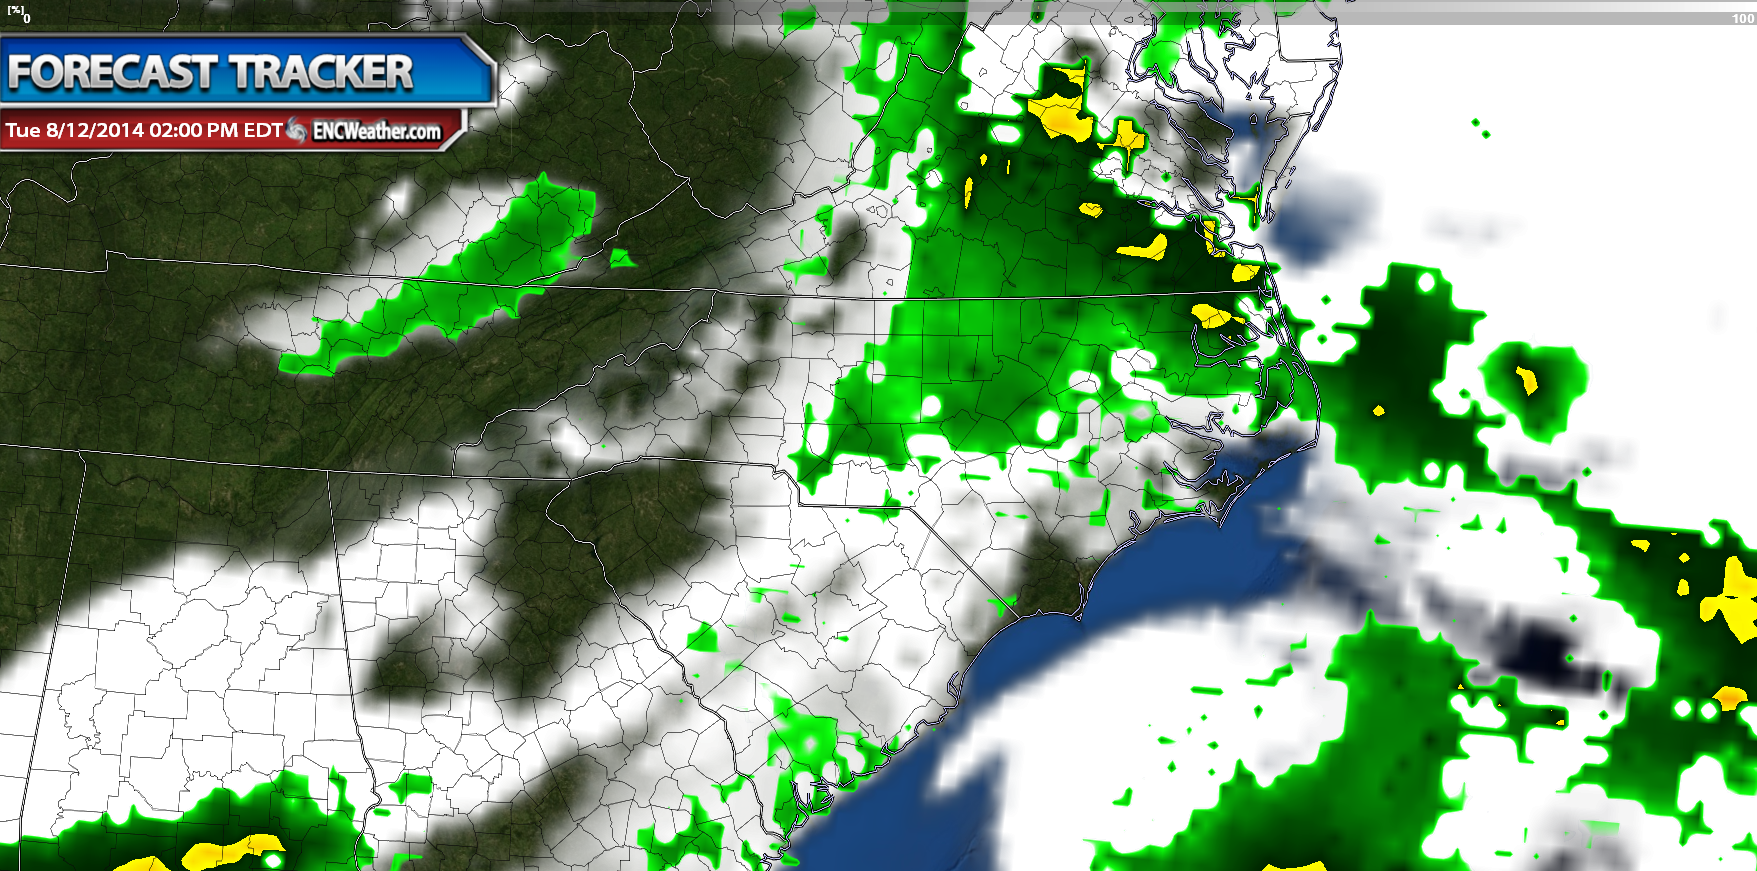 NAM forecast model shows some showers associated with the approaching cold front across ENC.